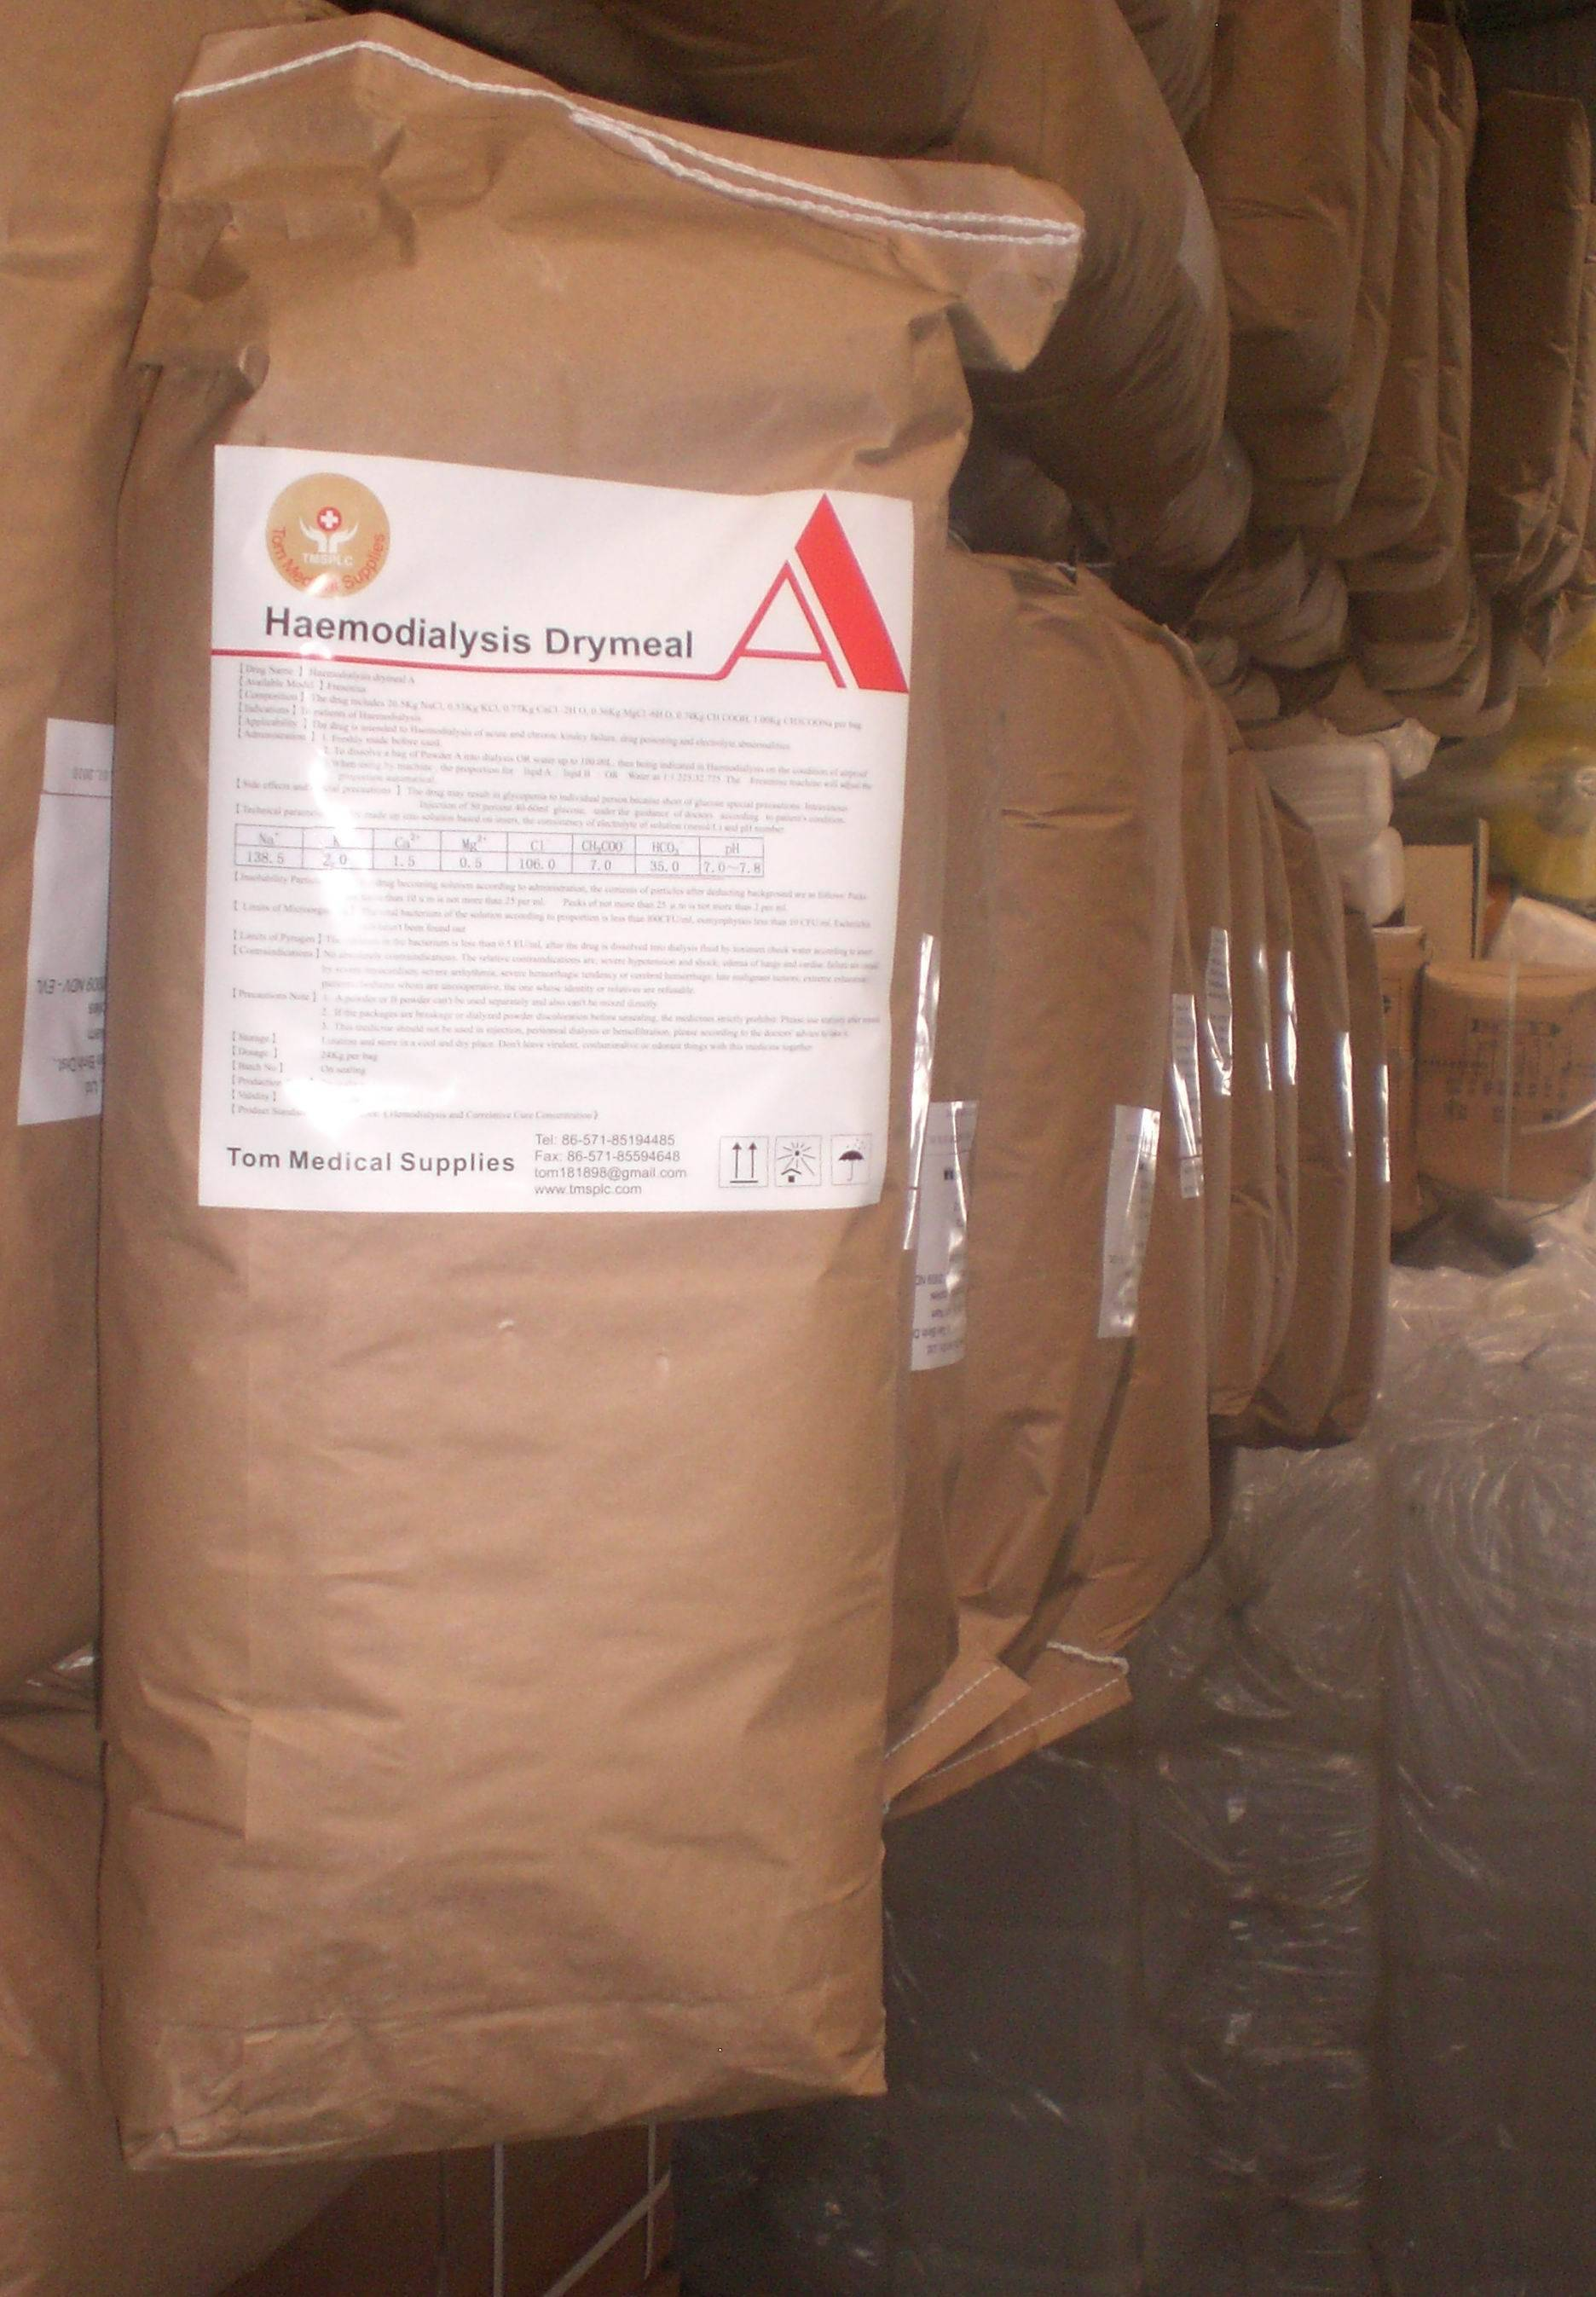 Dry Acid Concentrate,Dialysis Conce,nDry Concentrates For Hemodialysistrates,